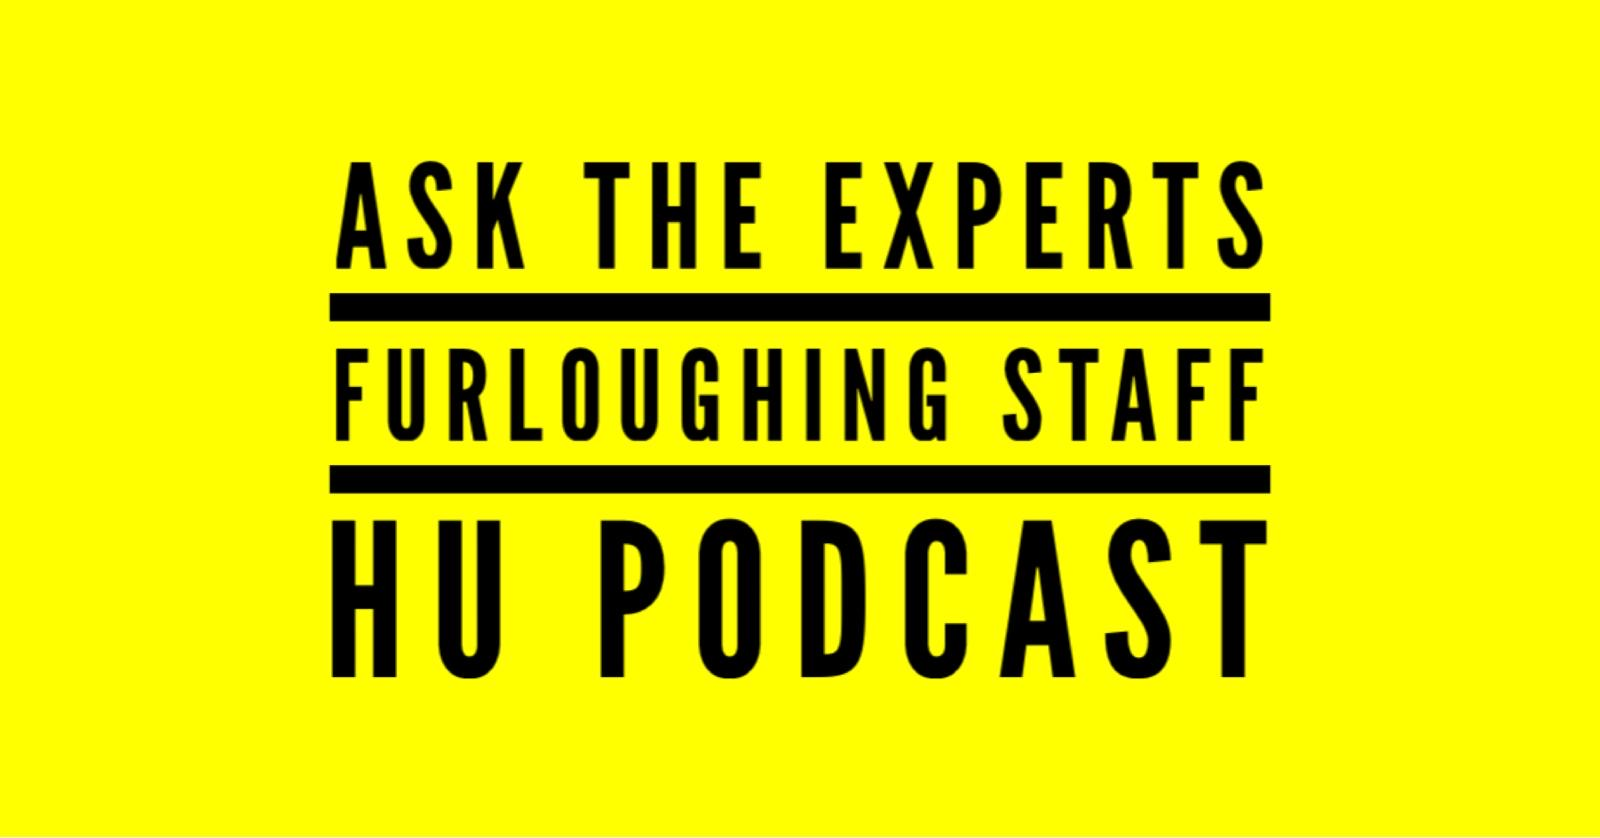 Ask The Experts Furloughing Staff